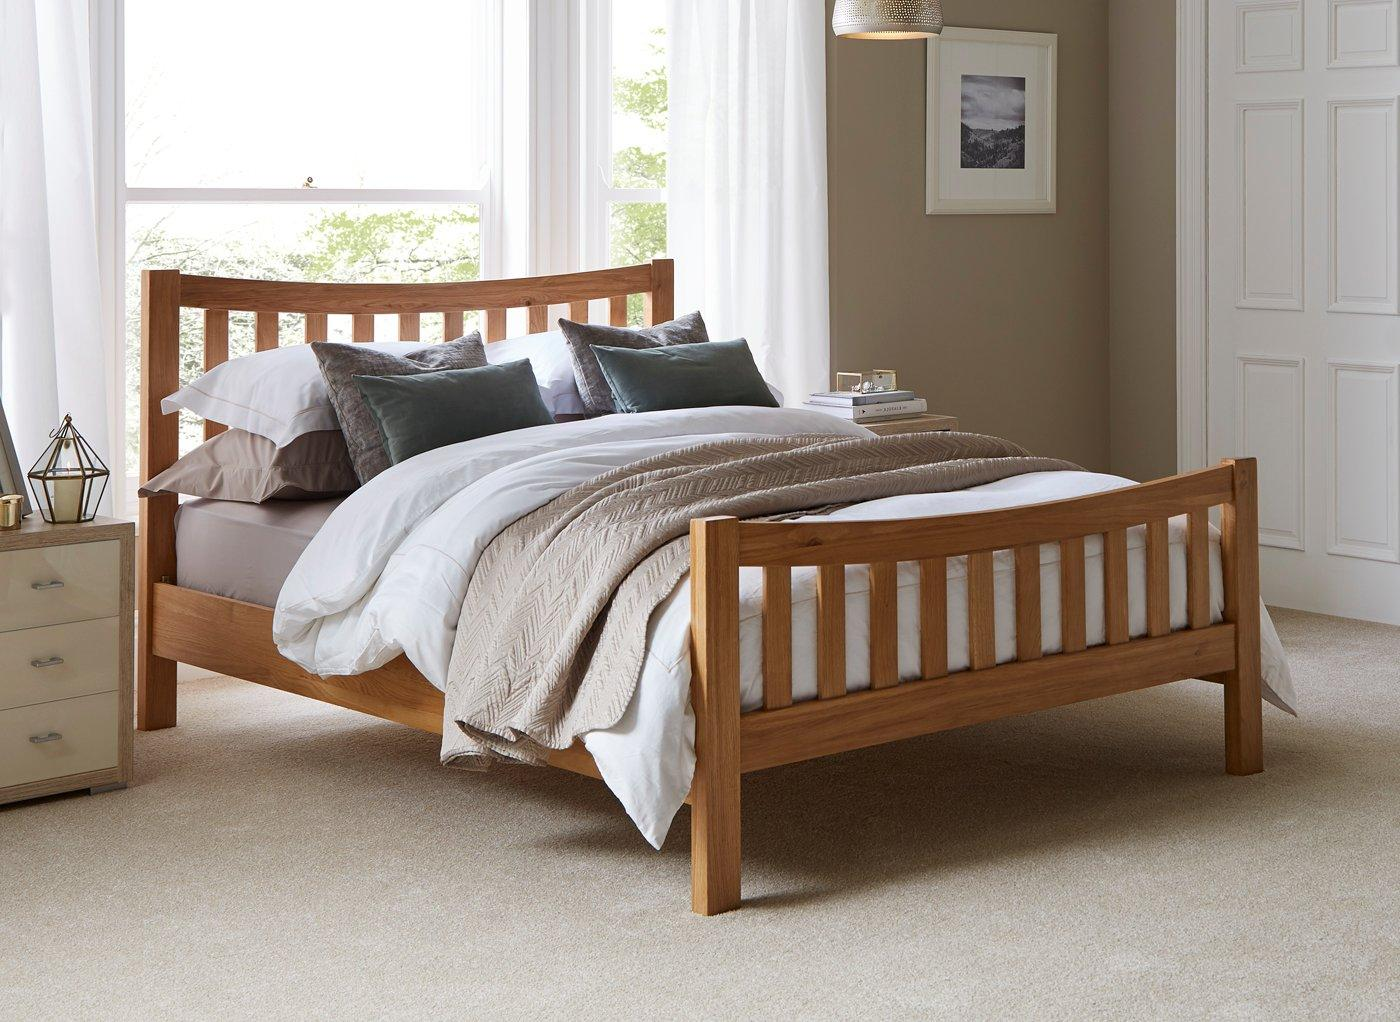 Sherwood Wooden Bed Frame All Beds Beds Dreams